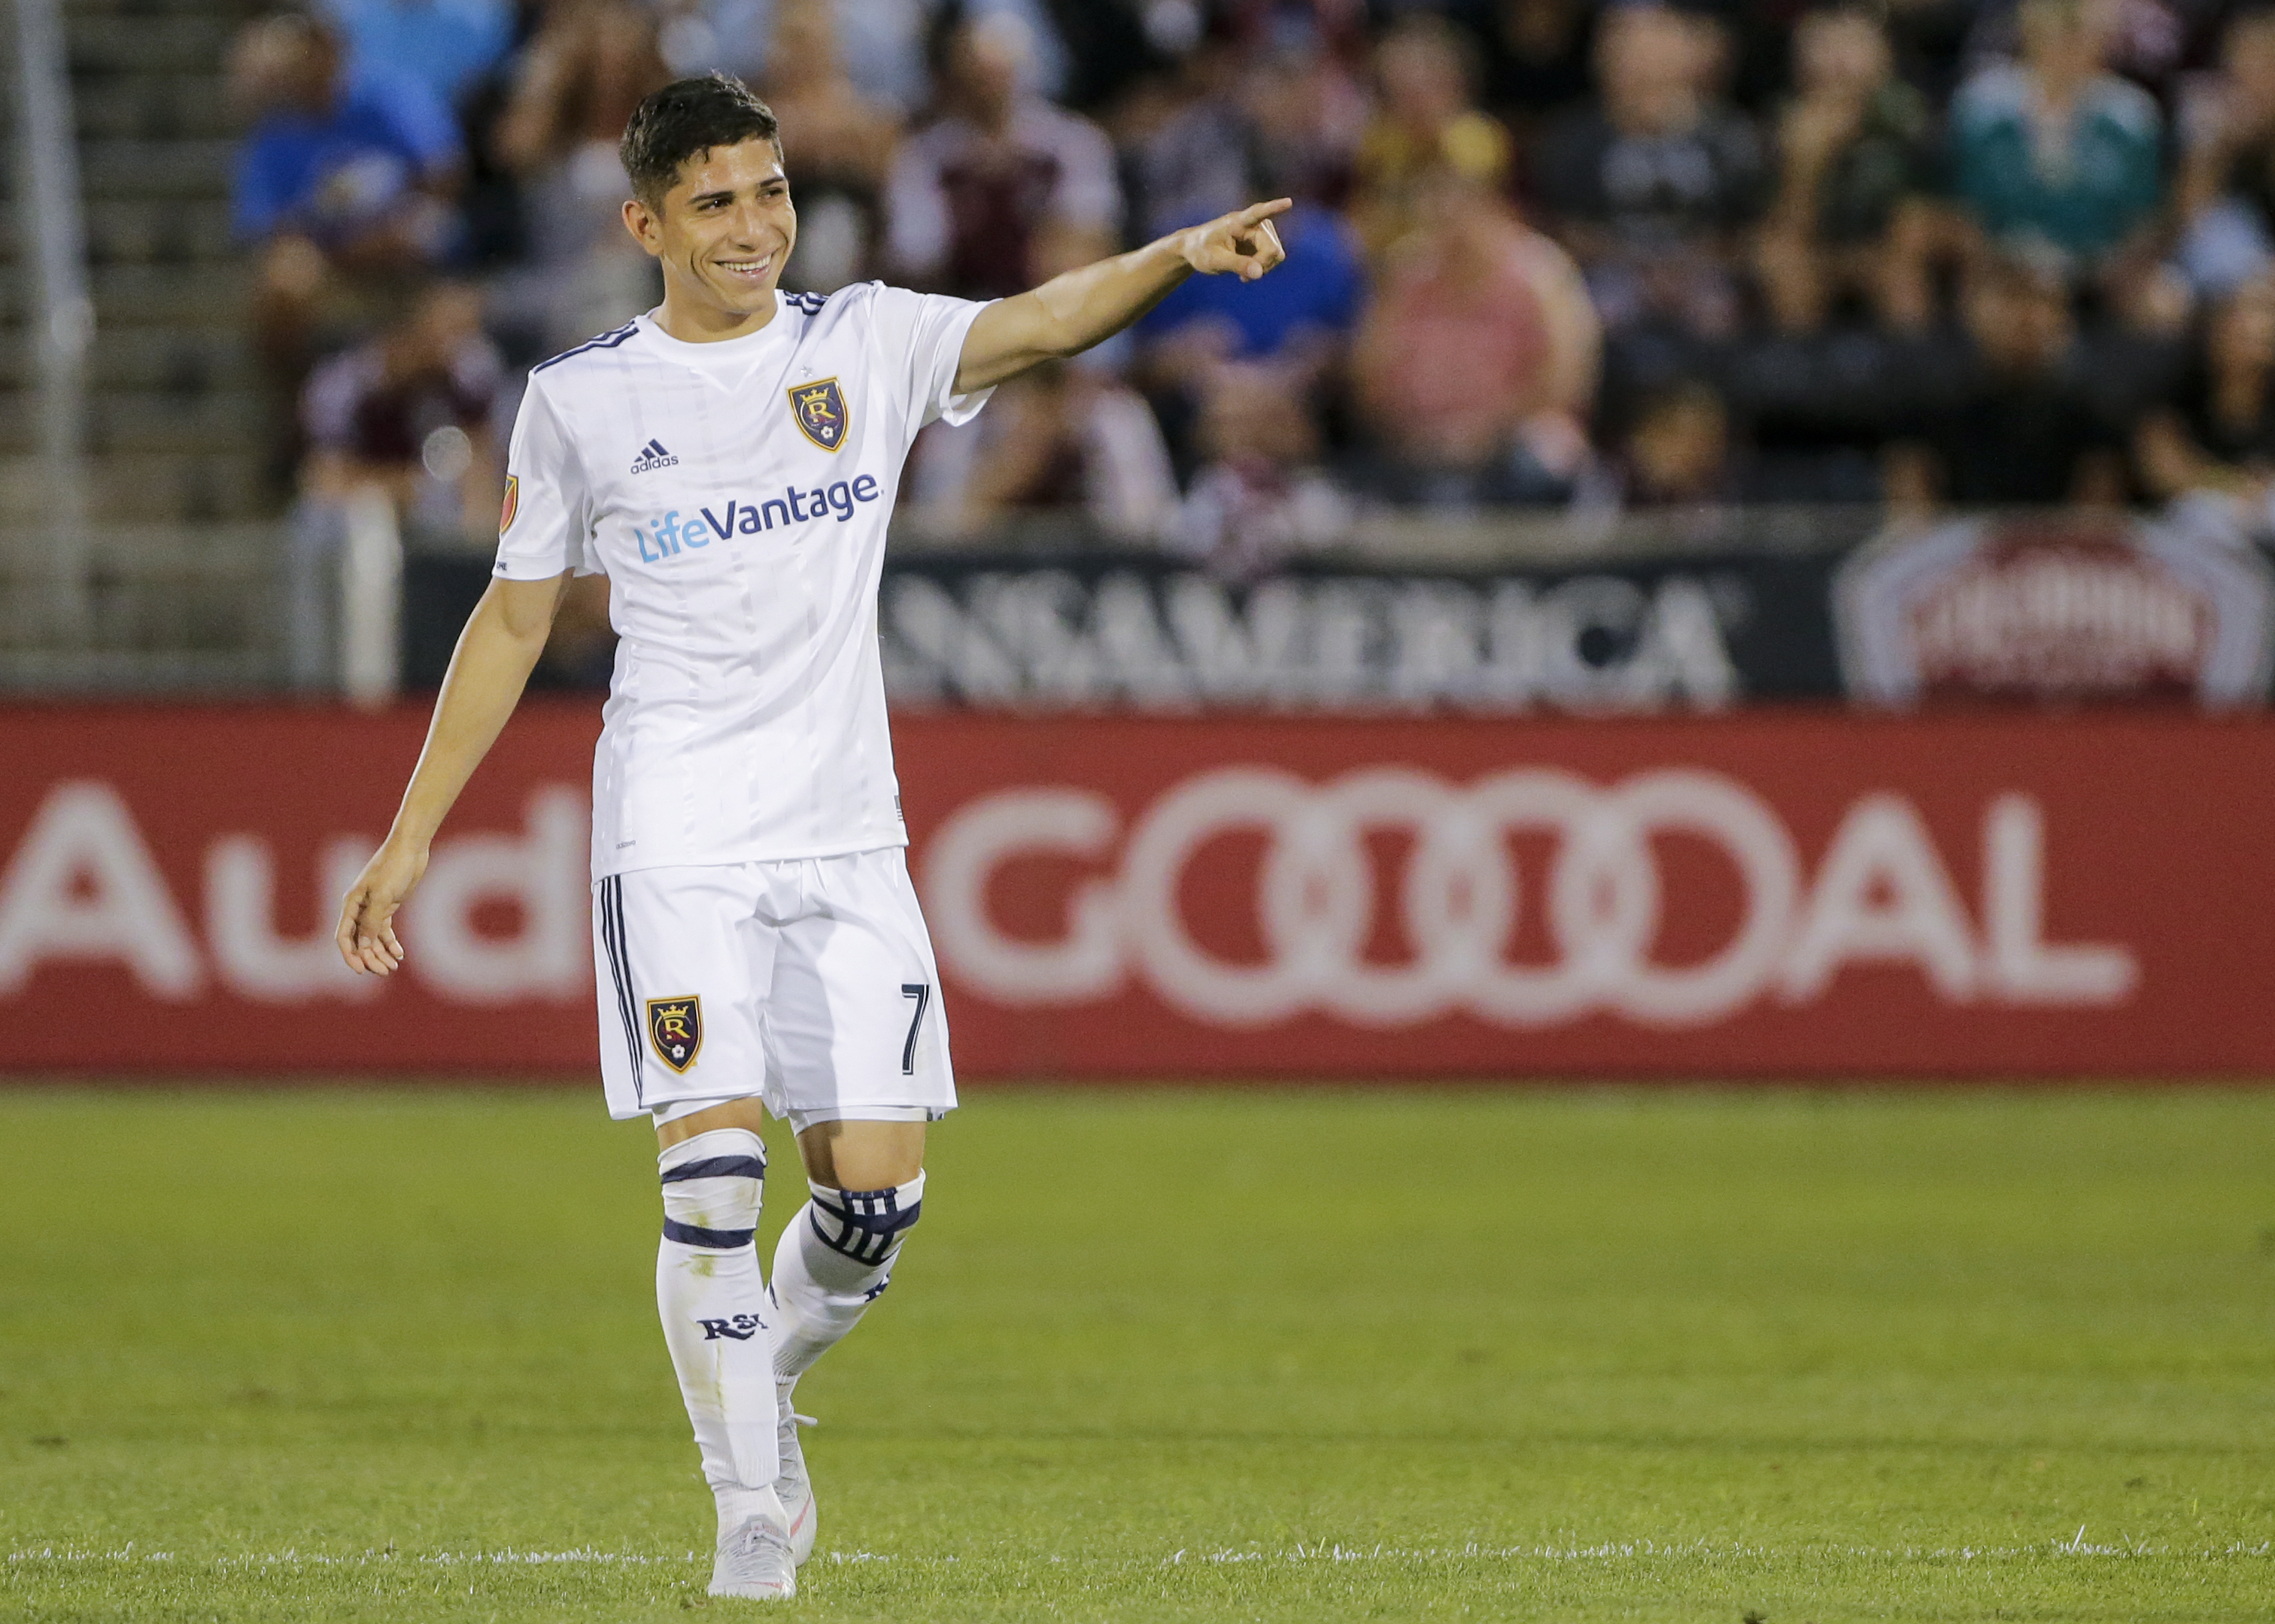 Real Salt Lake forward Jefferson Savarino celebrates a goal against the Colorado Rapids during the first half of an MLS soccer match Saturday, Aug. 25, 2018, in Commerce City, Colo. (AP Photo/Jack Dempsey)